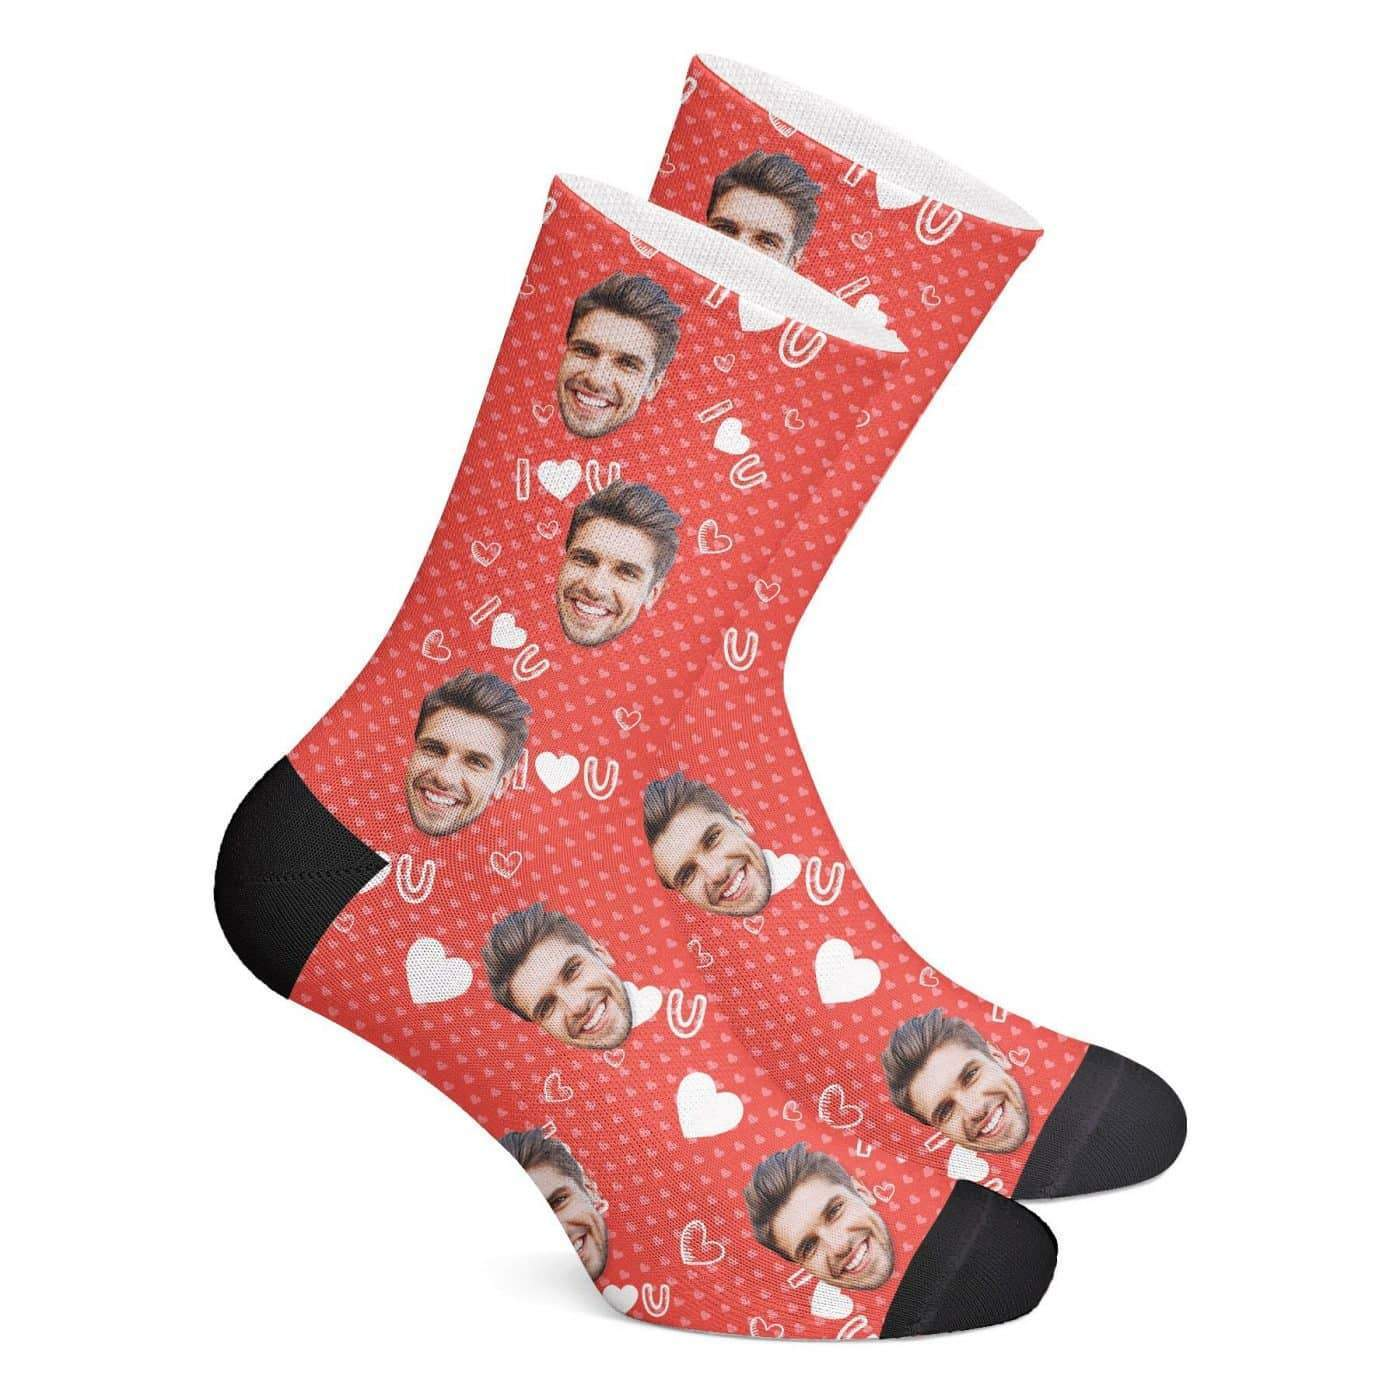 Custom Love Socks